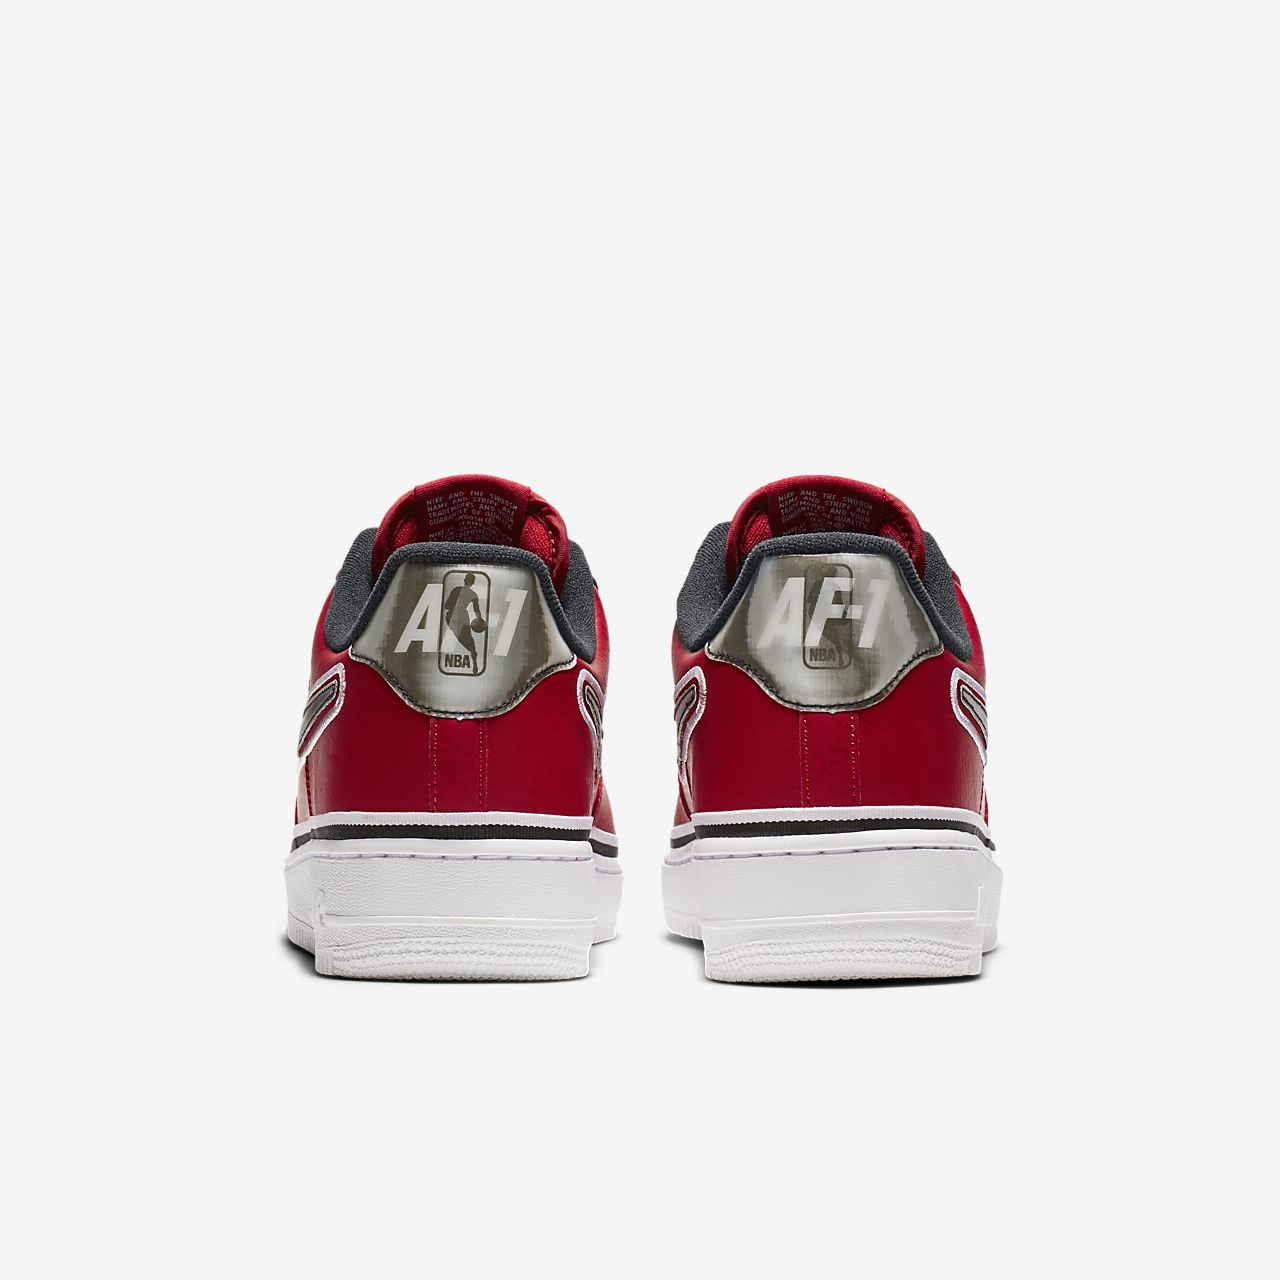 new arrival ed710 766f8 ... Nike Air Force 1 NBA Low (Chicago Bulls) Men s Shoe